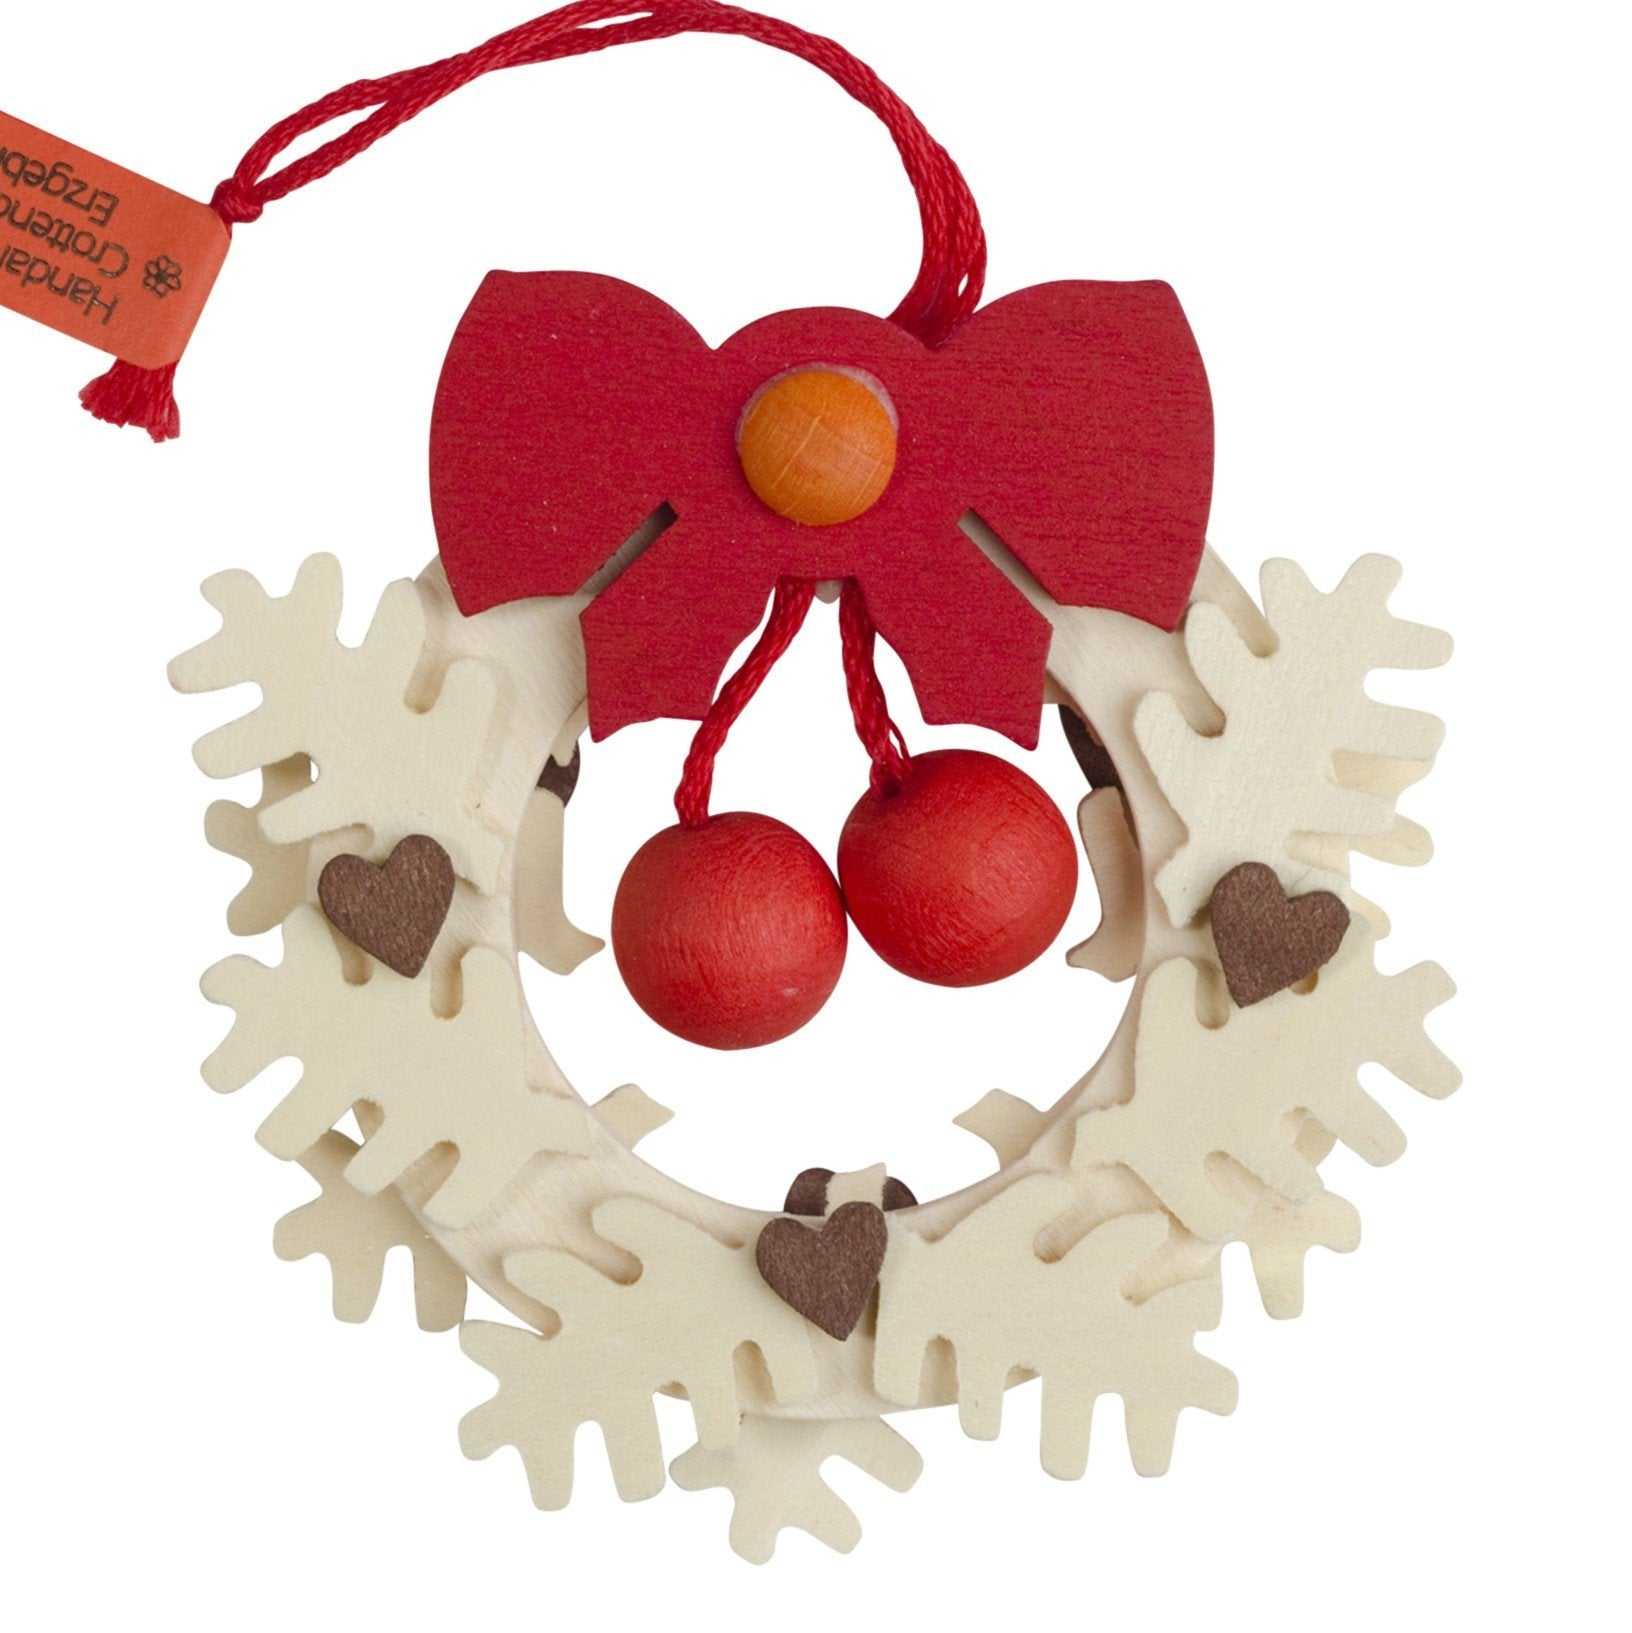 Textured Wreath with Hearts - Christmas tree decoration